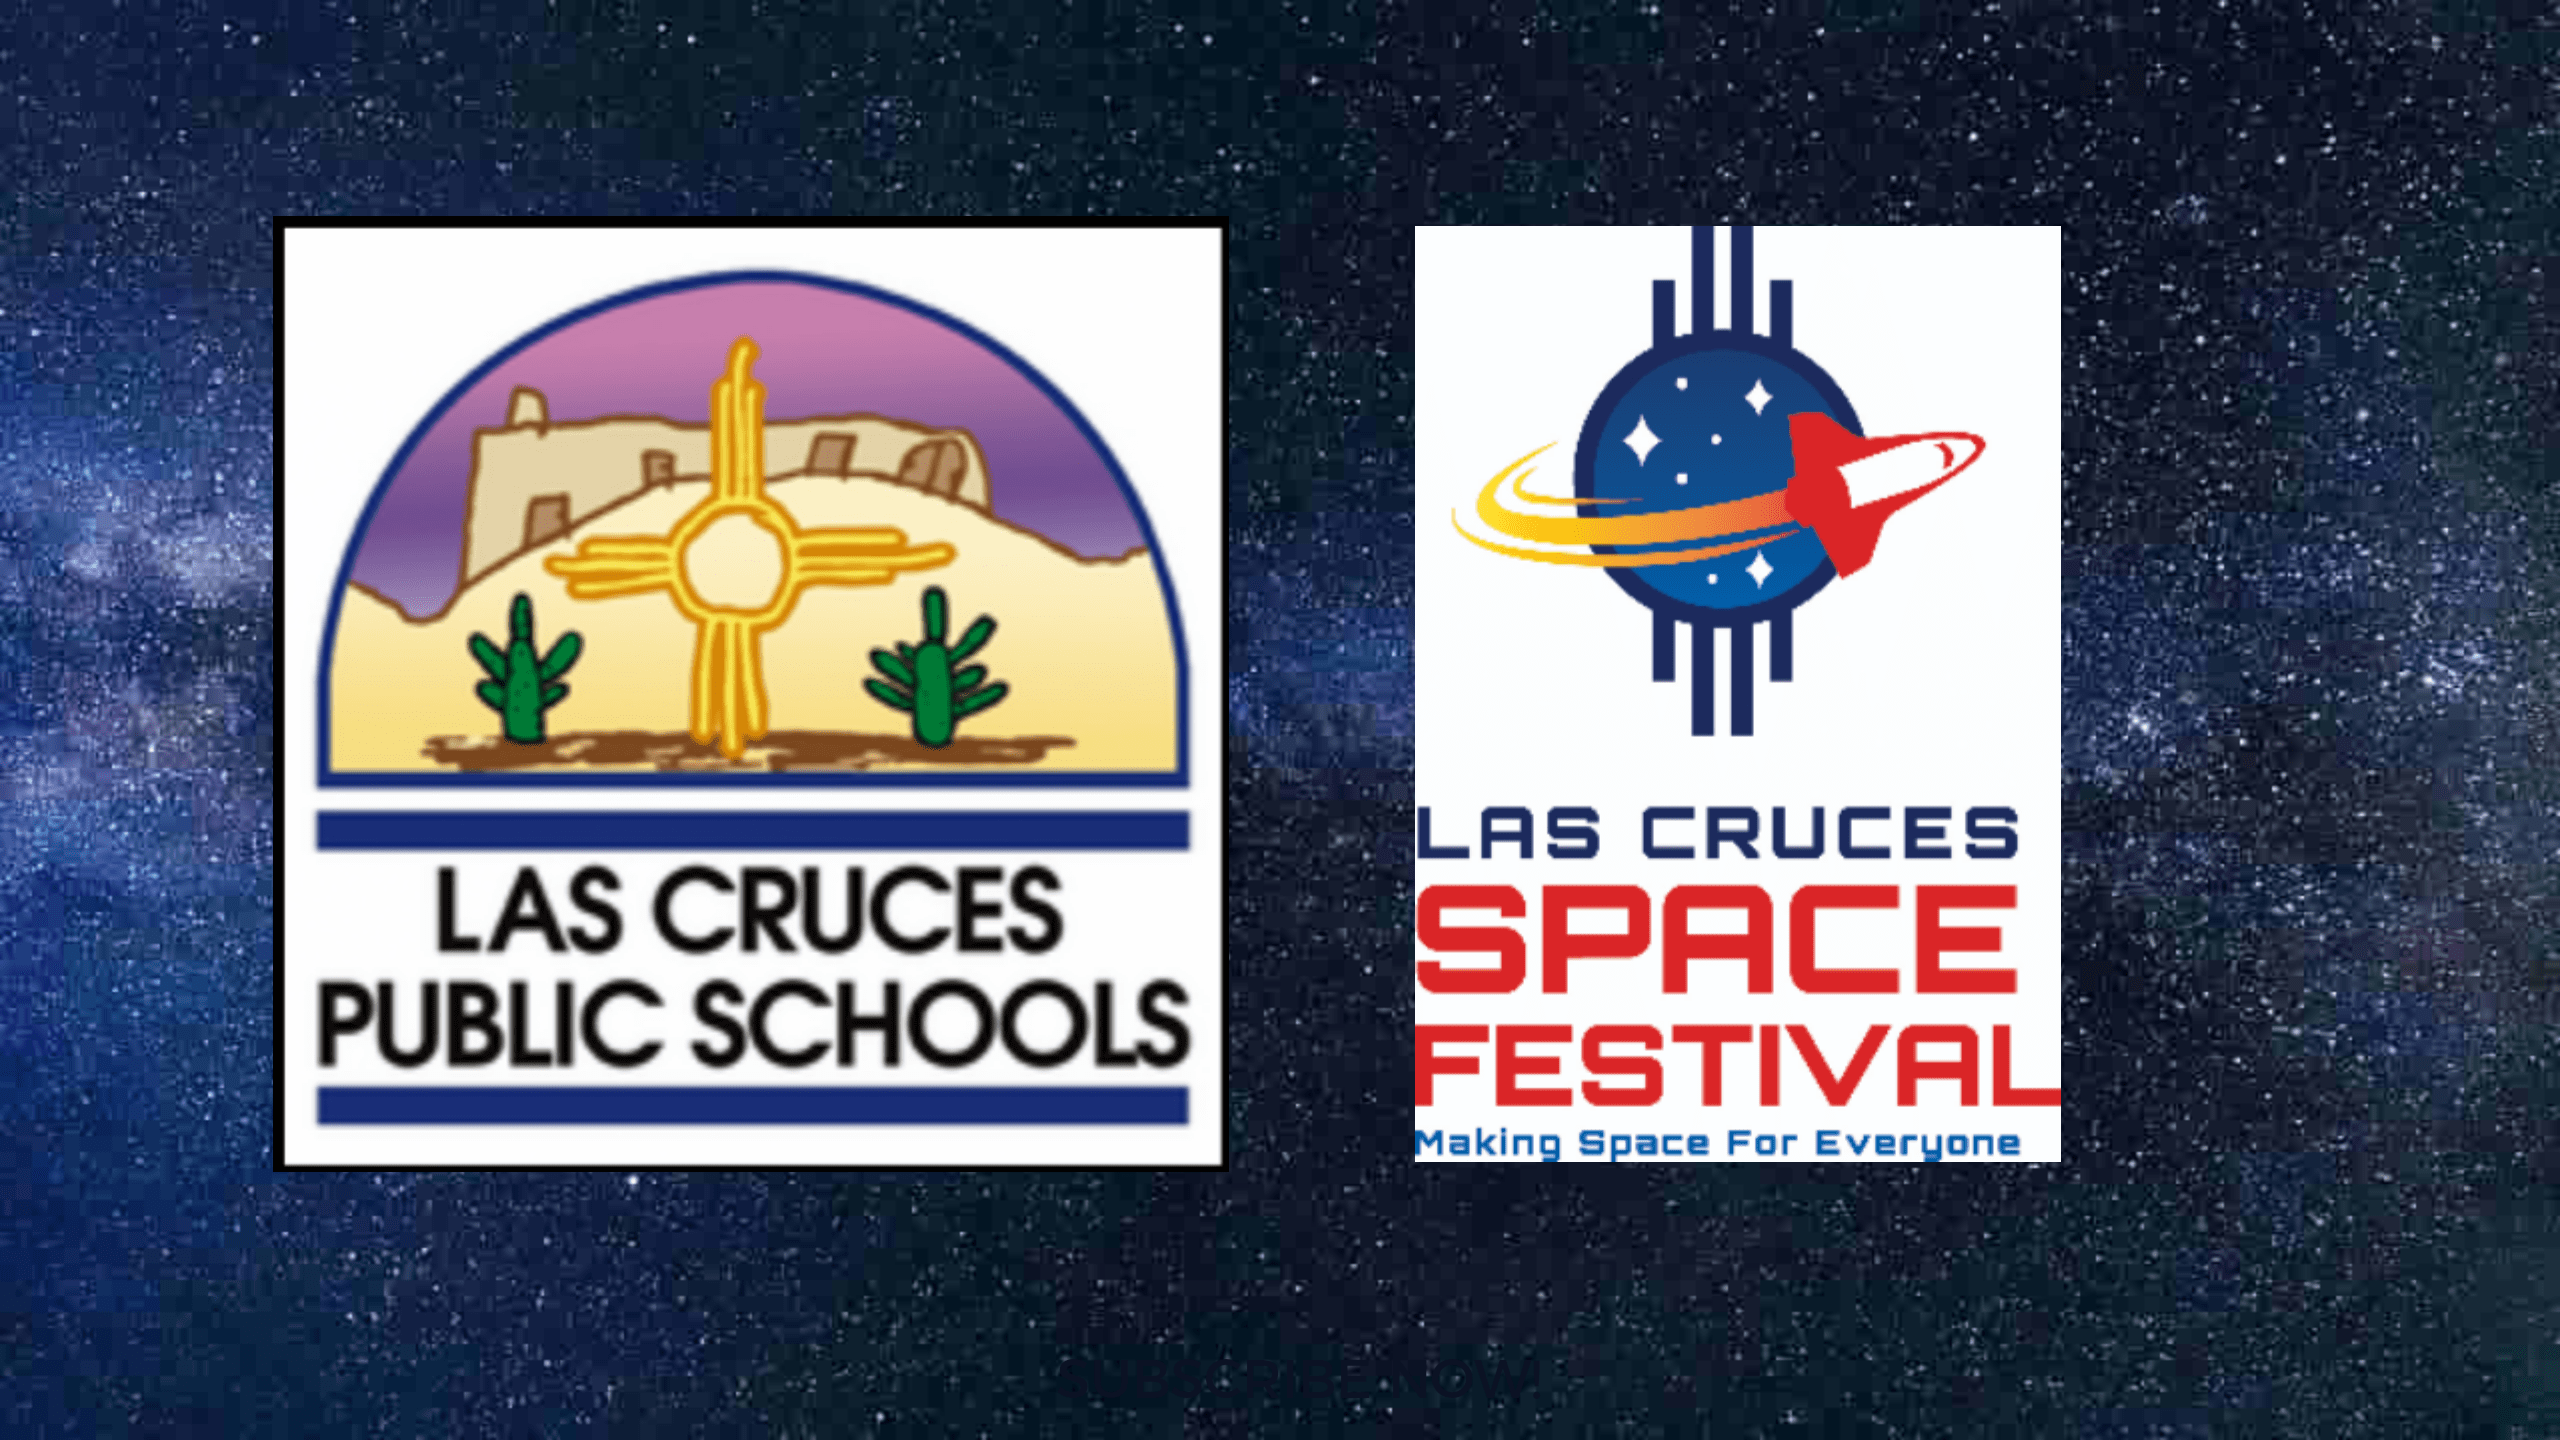 Las Cruces Space Festival Classroom Activities